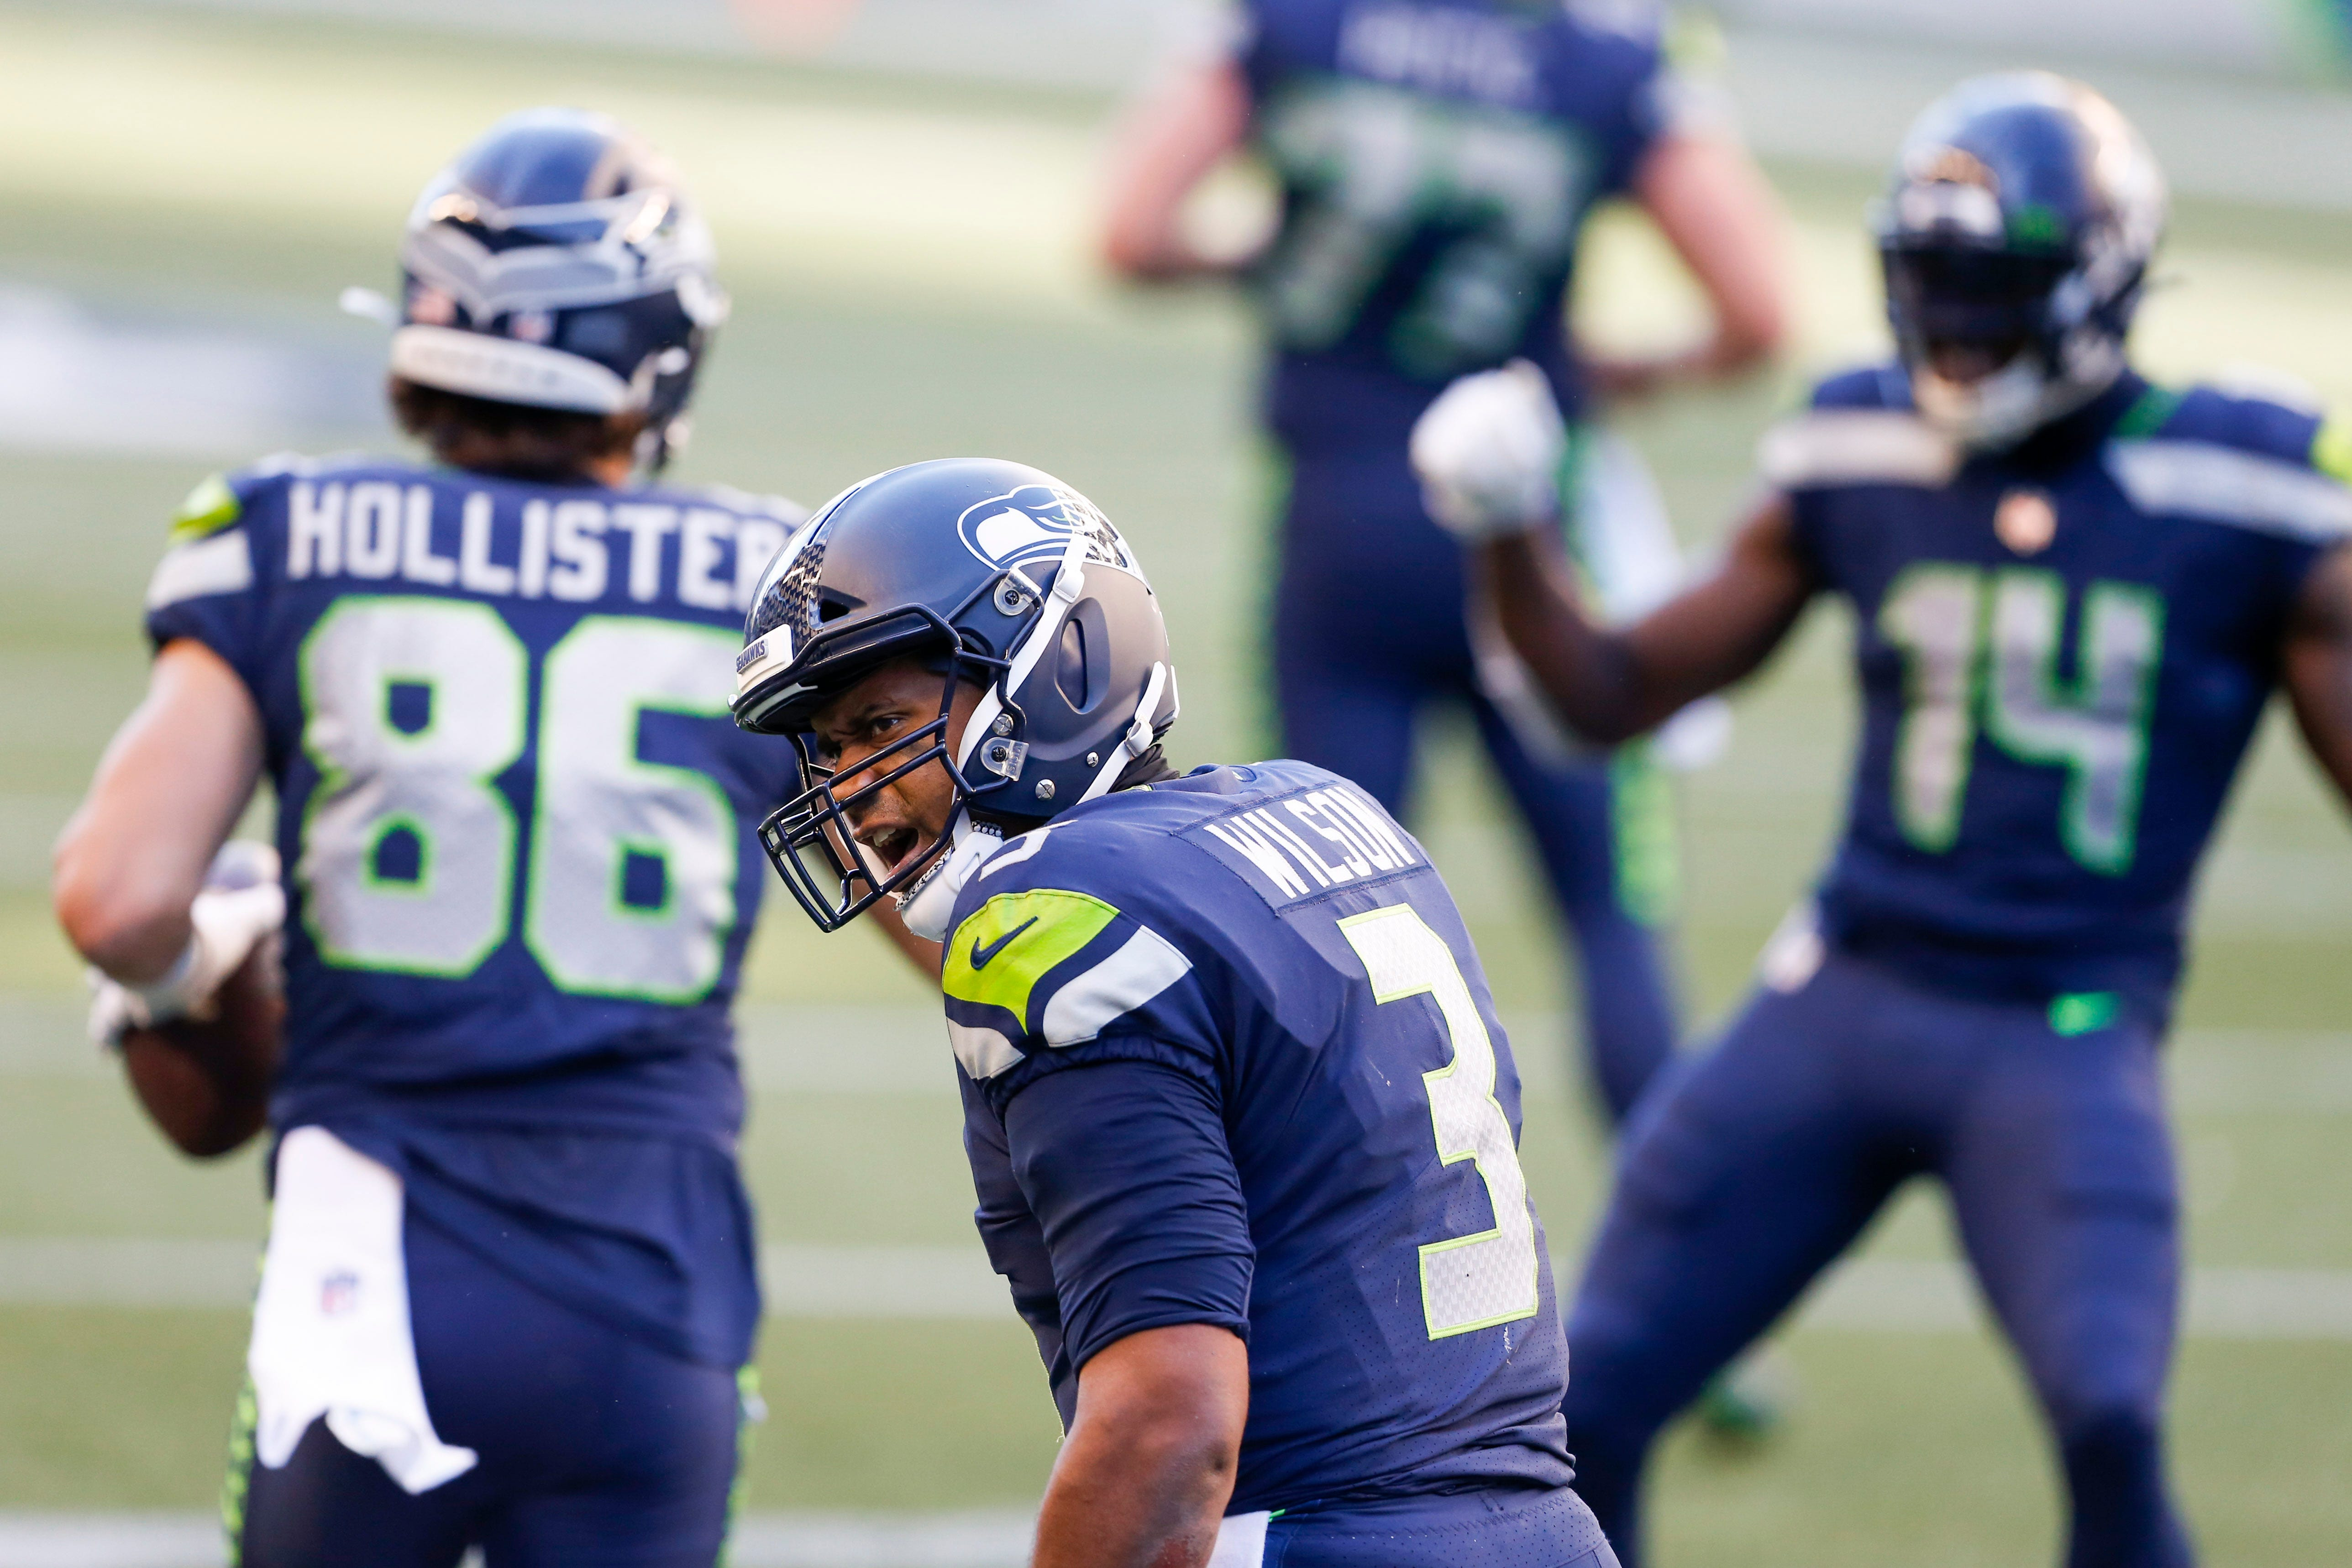 Opinion: With red-hot Russell Wilson, the Seahawks have become NFL's ultimate closers